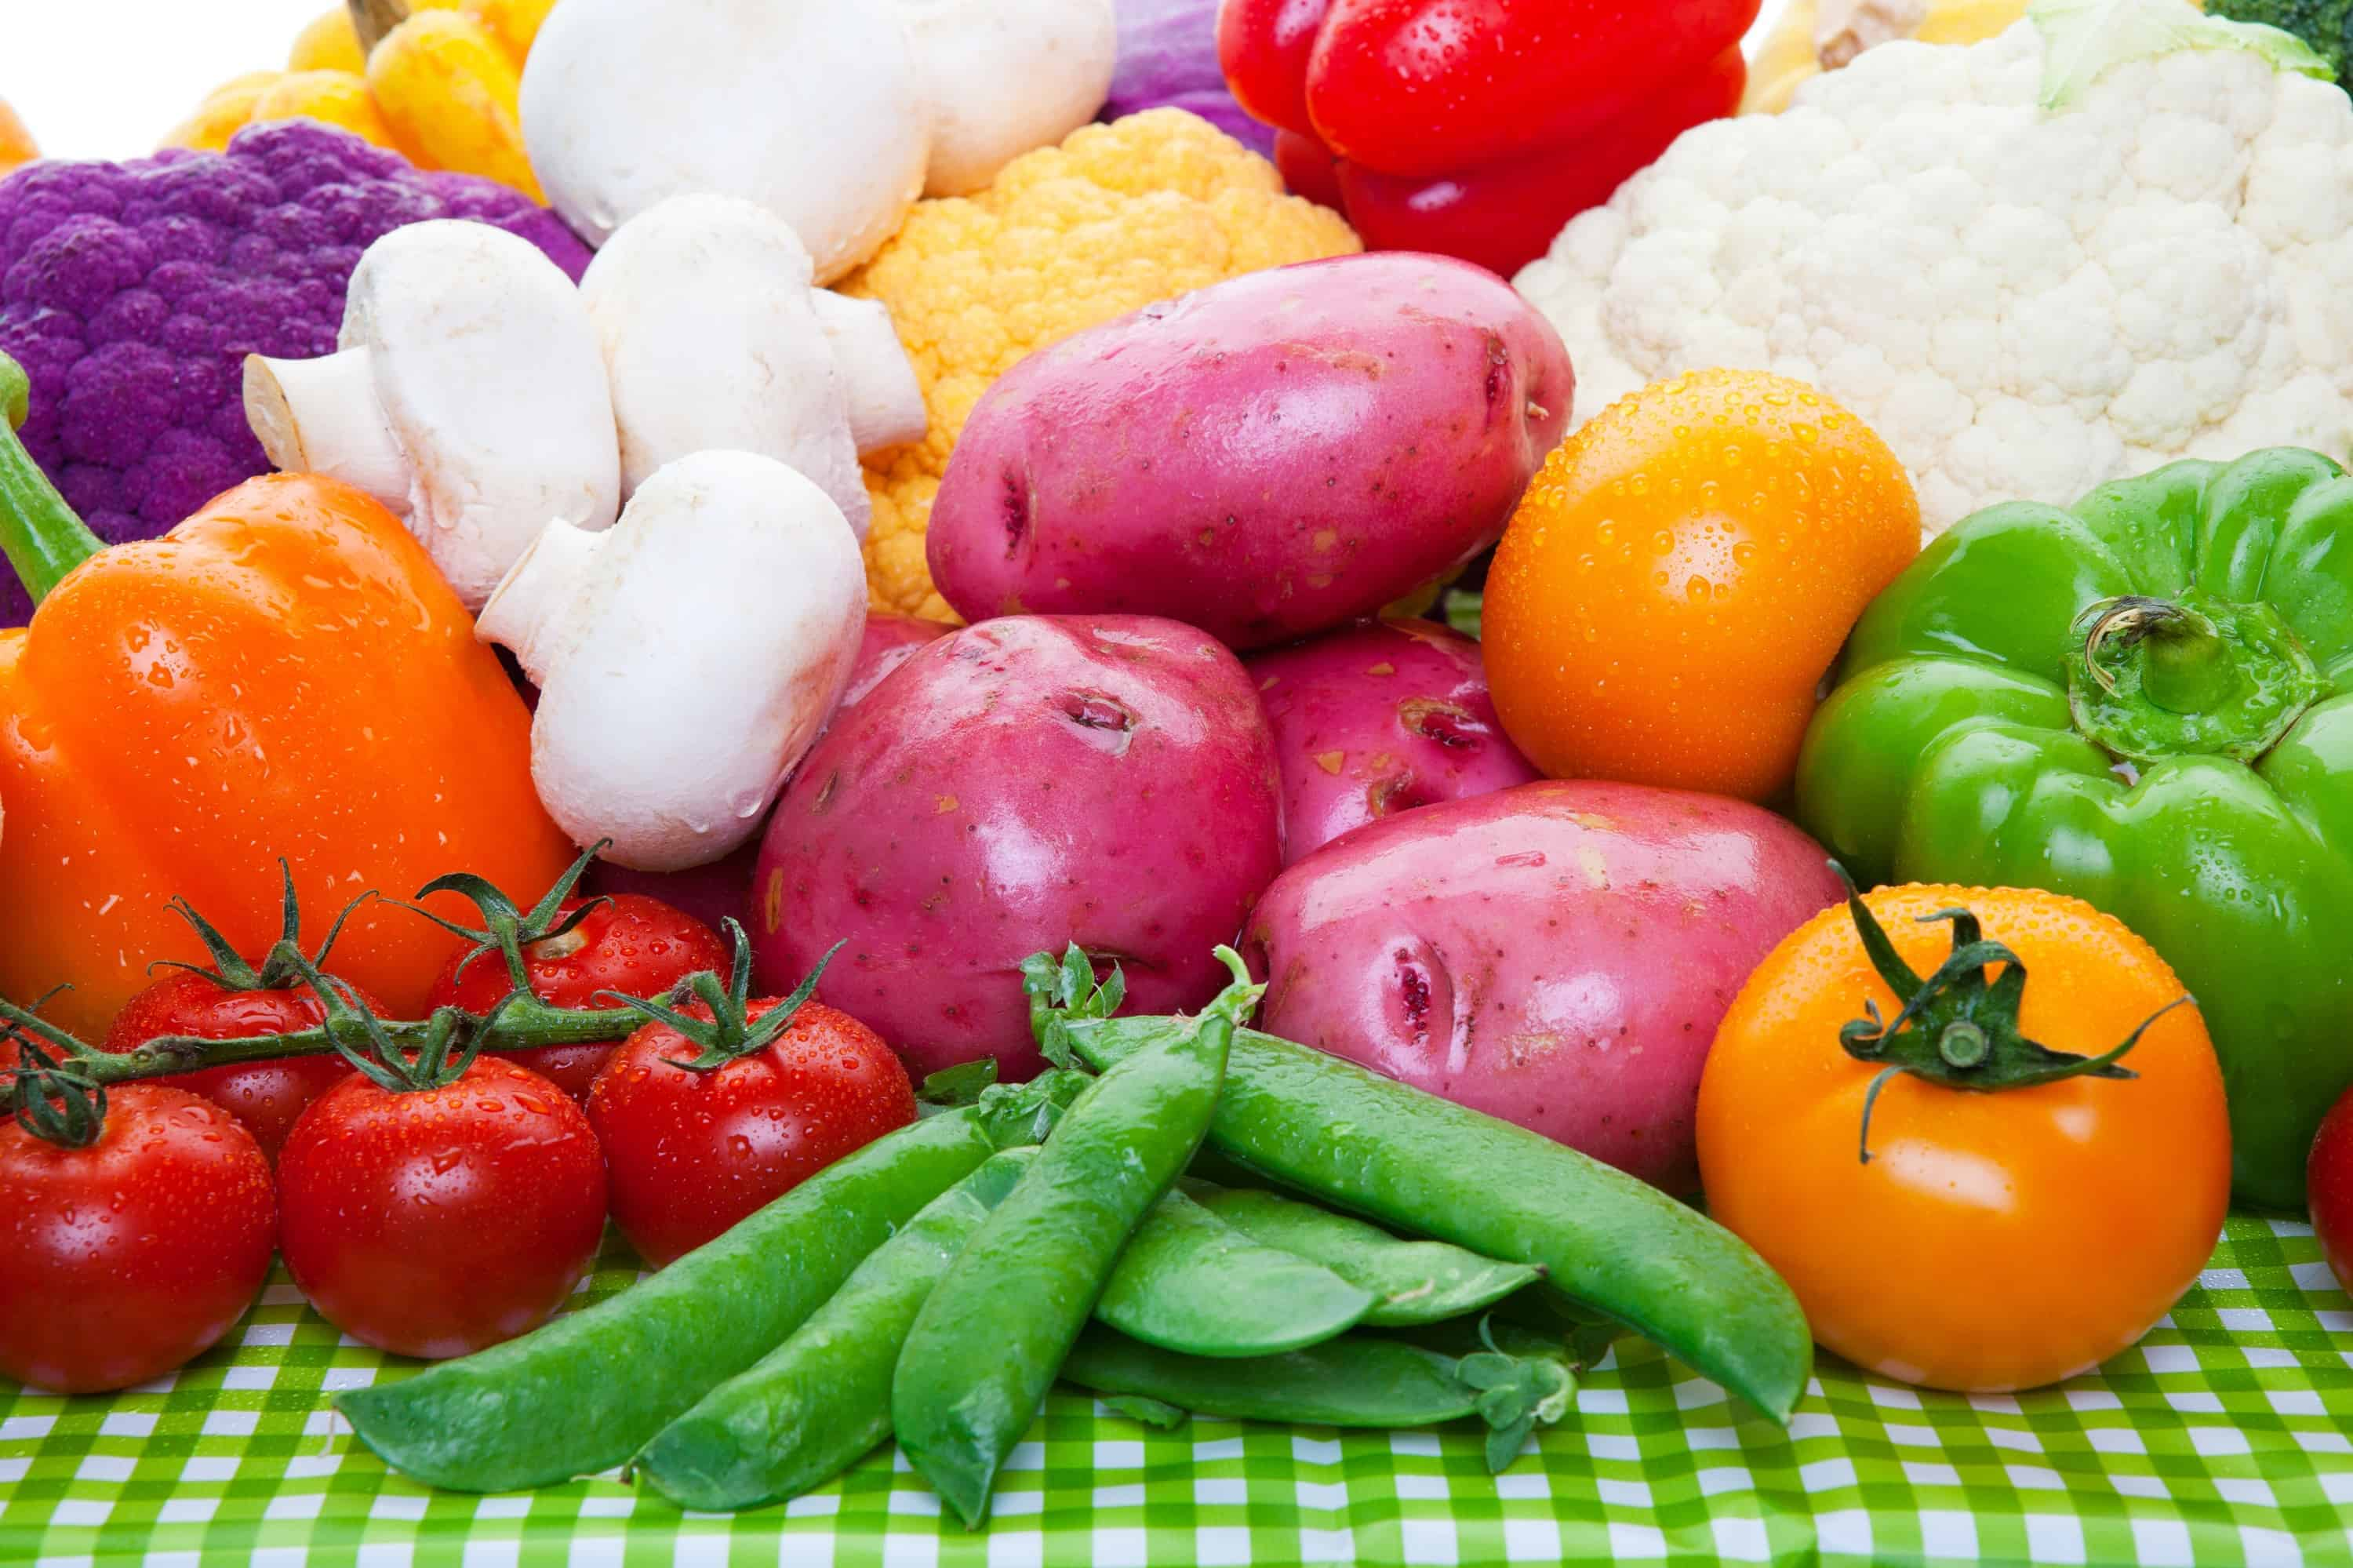 How to properly wash fruit & veggies (there's a correct way!)